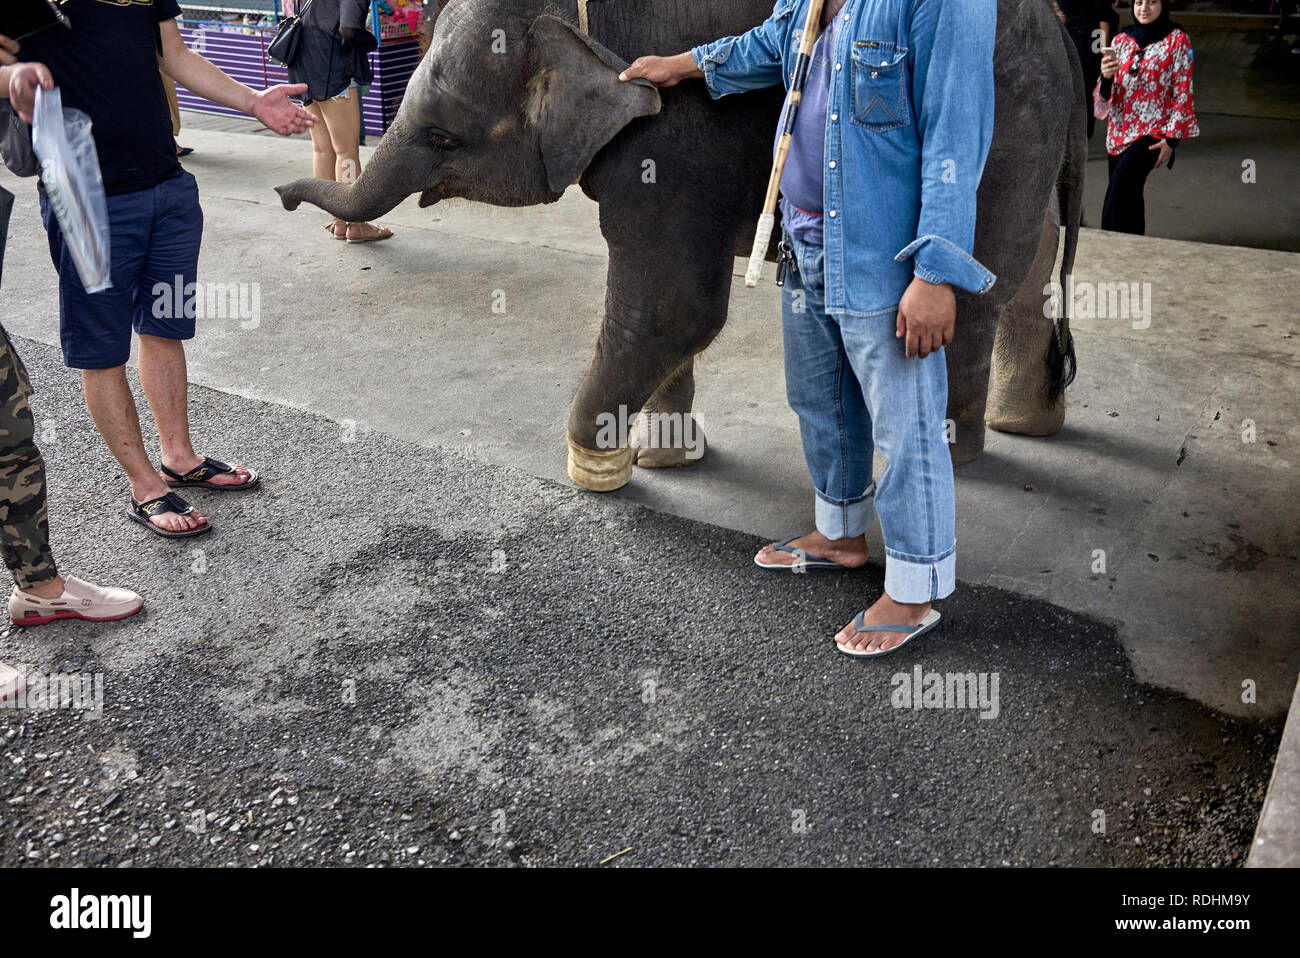 Young injured elephant rescued from a poachers foot trap necessitating amputation. Thailand Southeast Asia - Stock Image